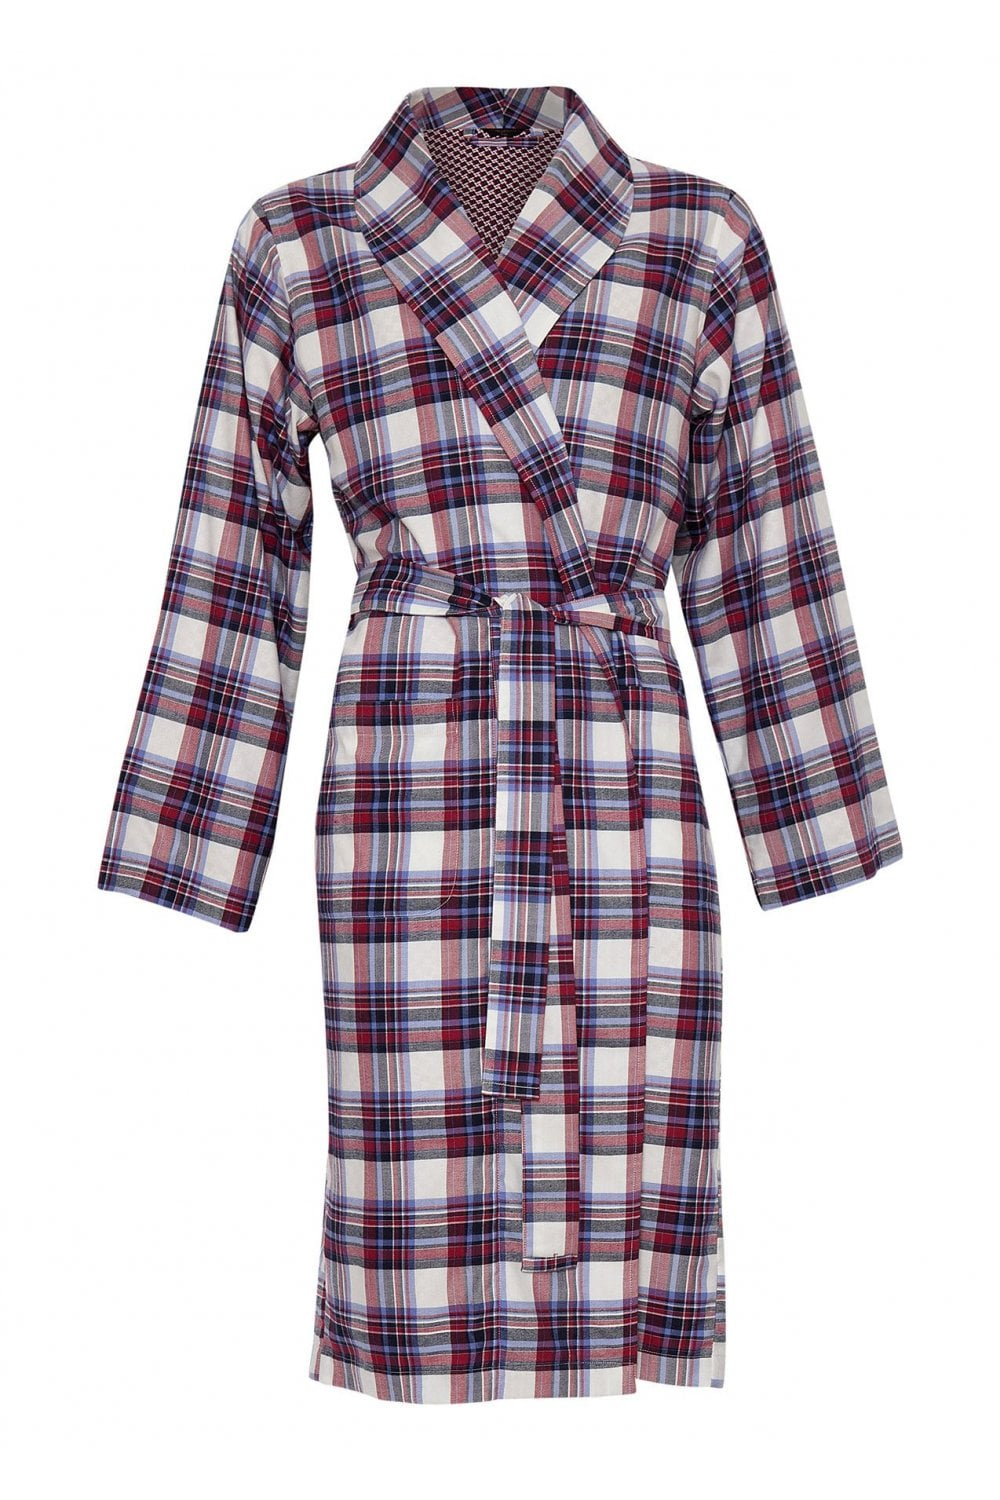 Cyberjammies Mens Henry Burgundy Multi Check Double Layered Long ... 051ce95db